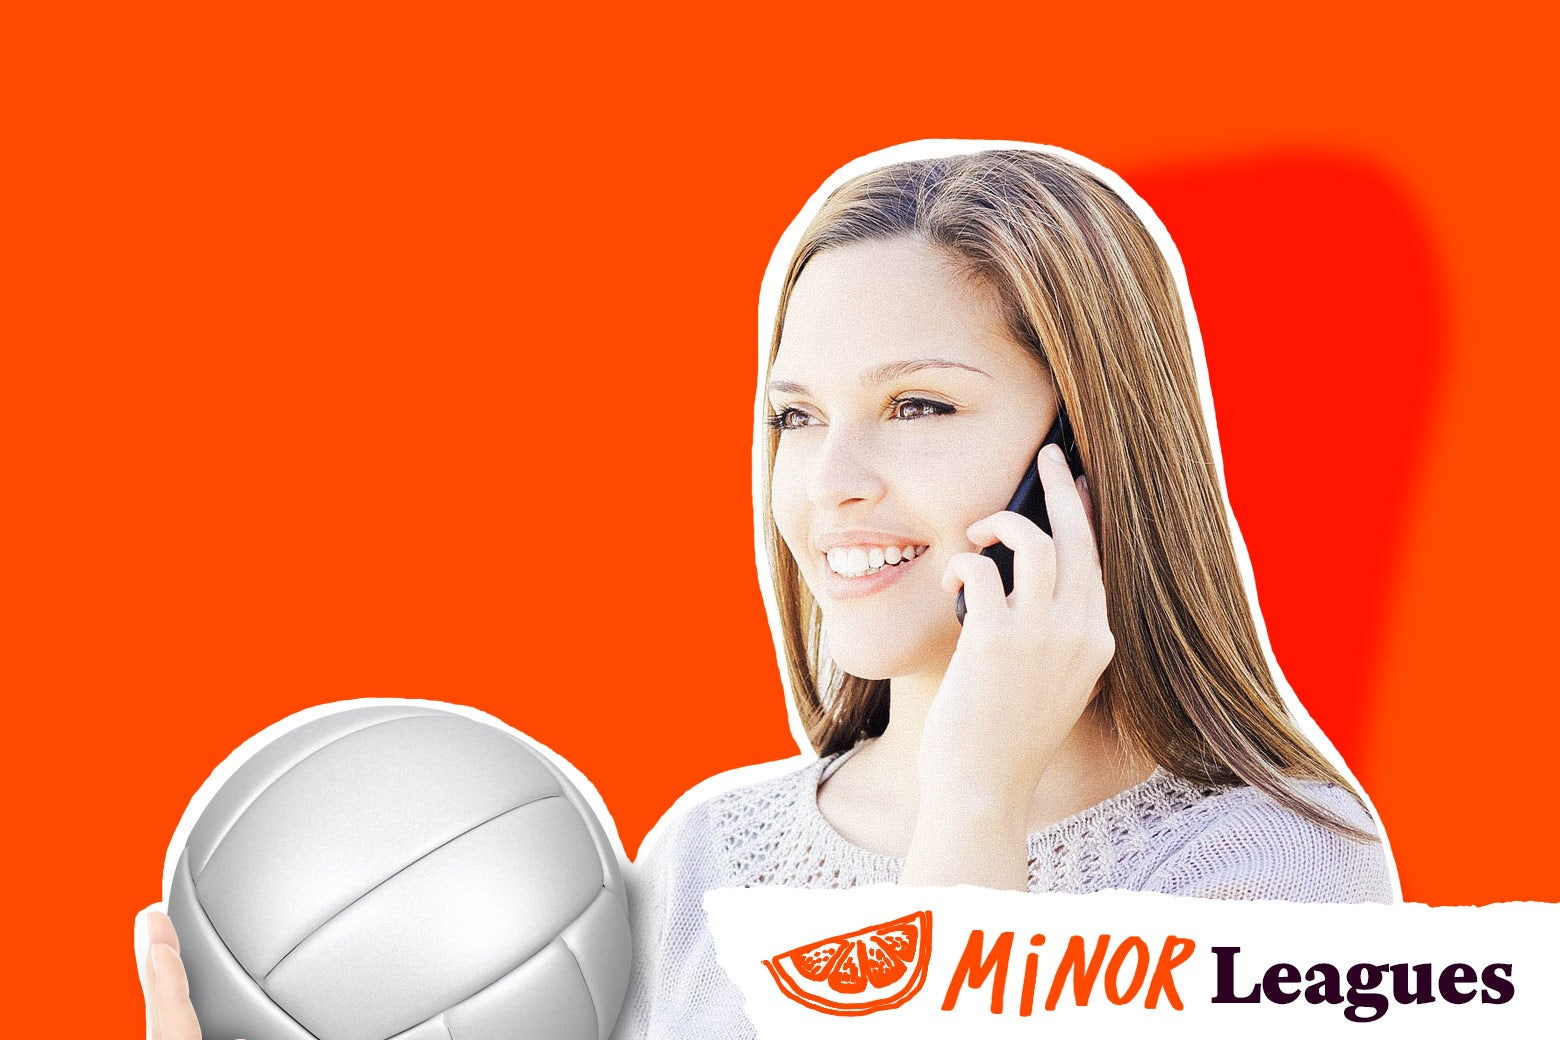 Teenager talking on her cellphone while holding a volleyball in her other hand.